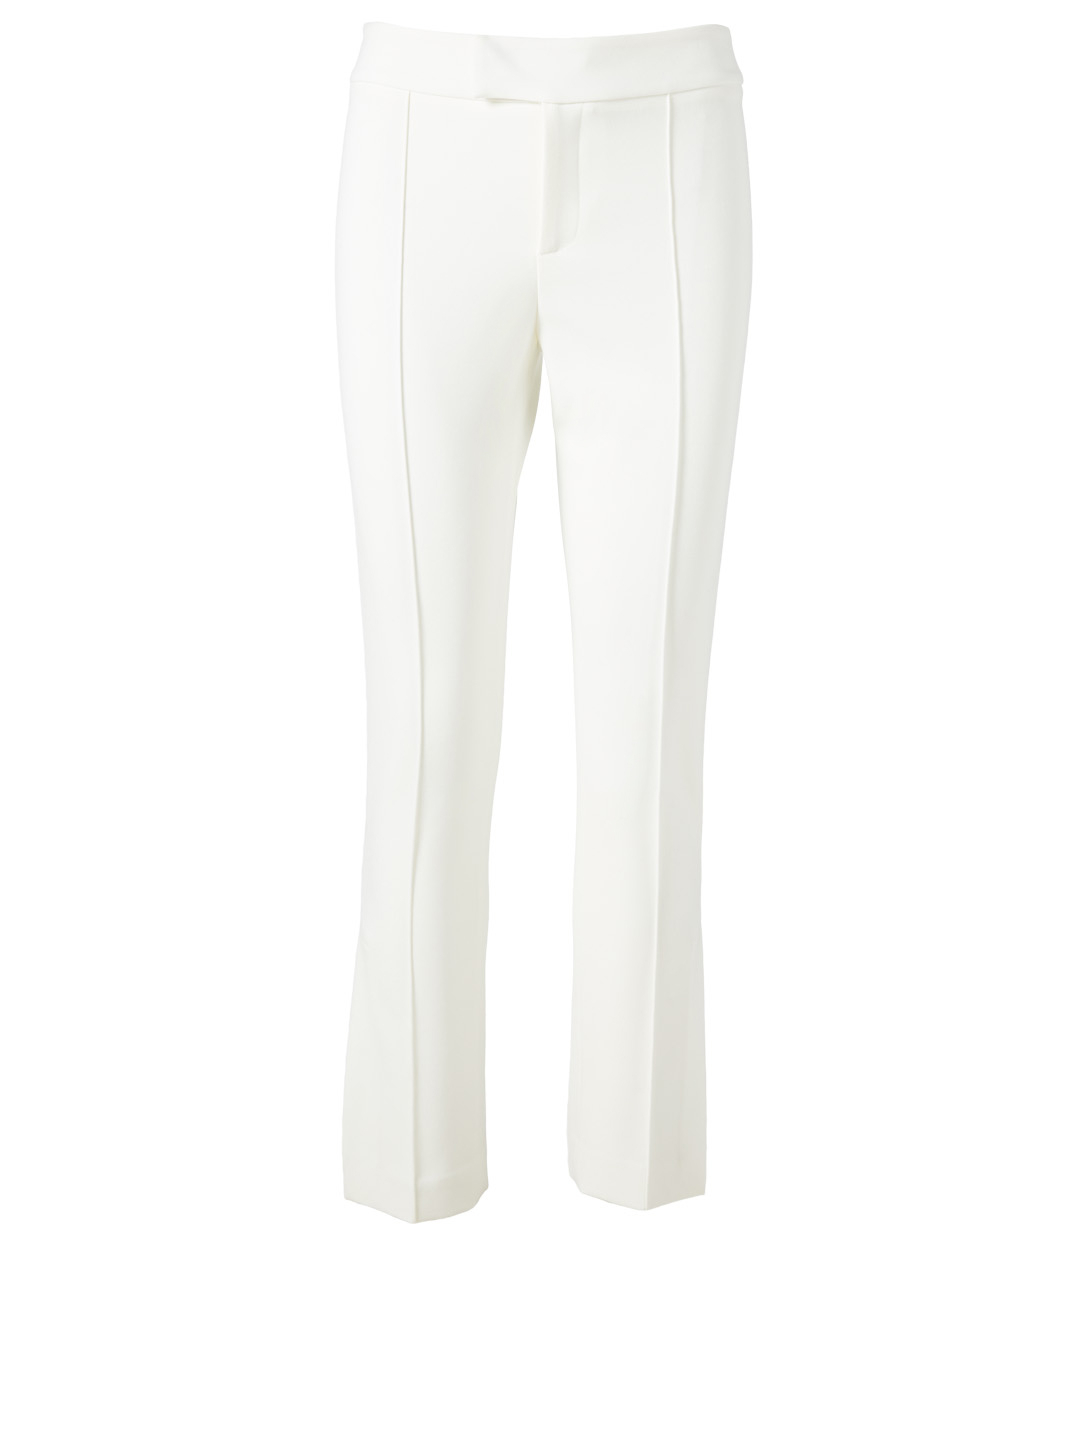 SMYTHE Stovepipe Pants Womens White